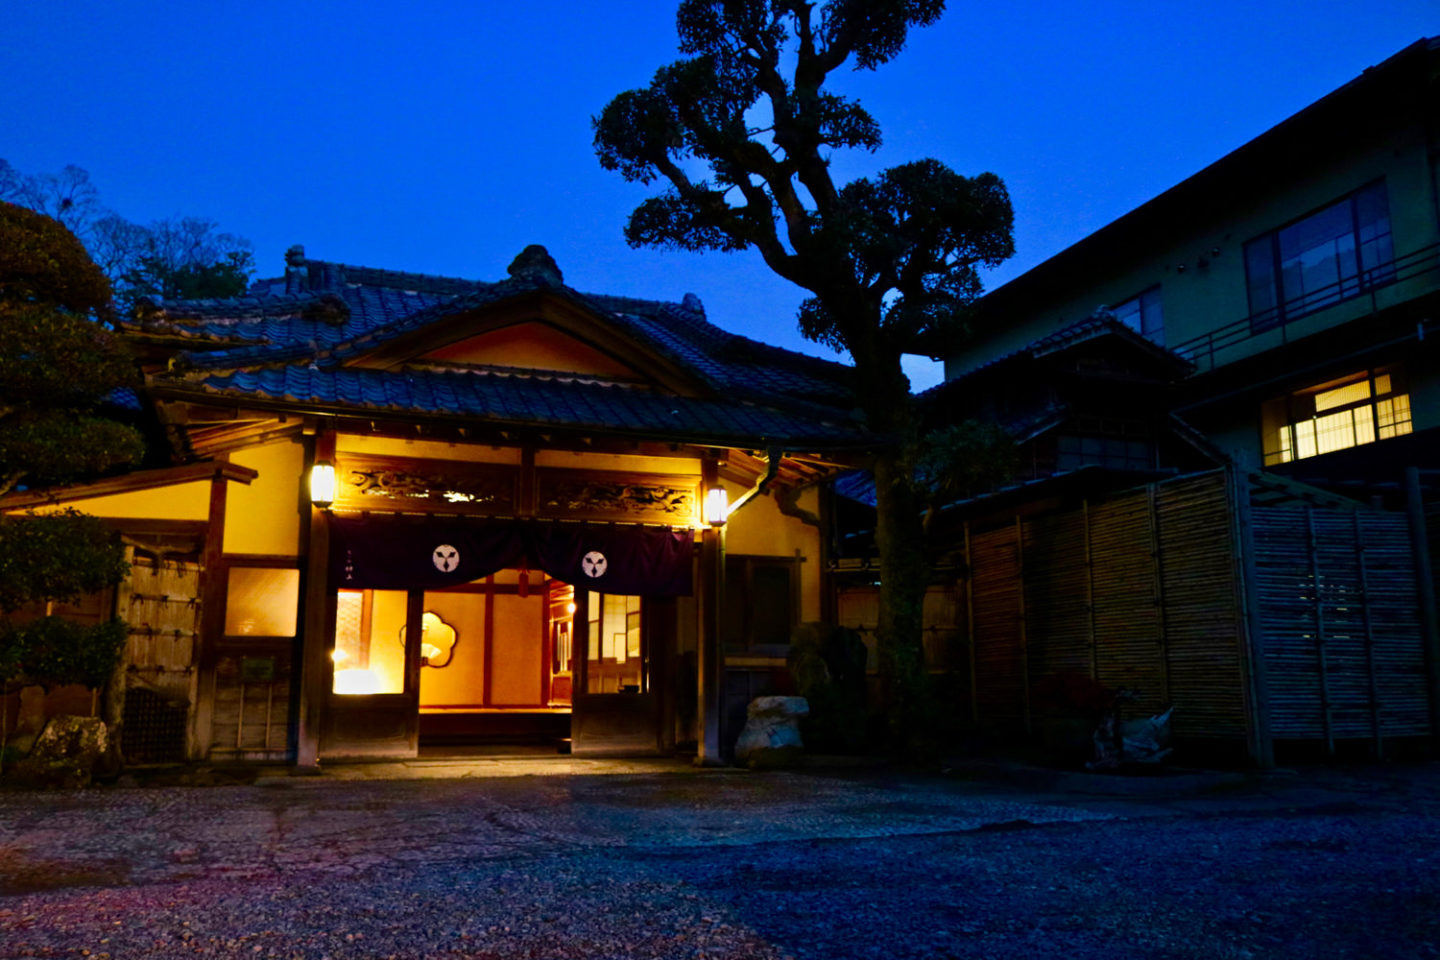 Entrance of Ochiairo Murakami